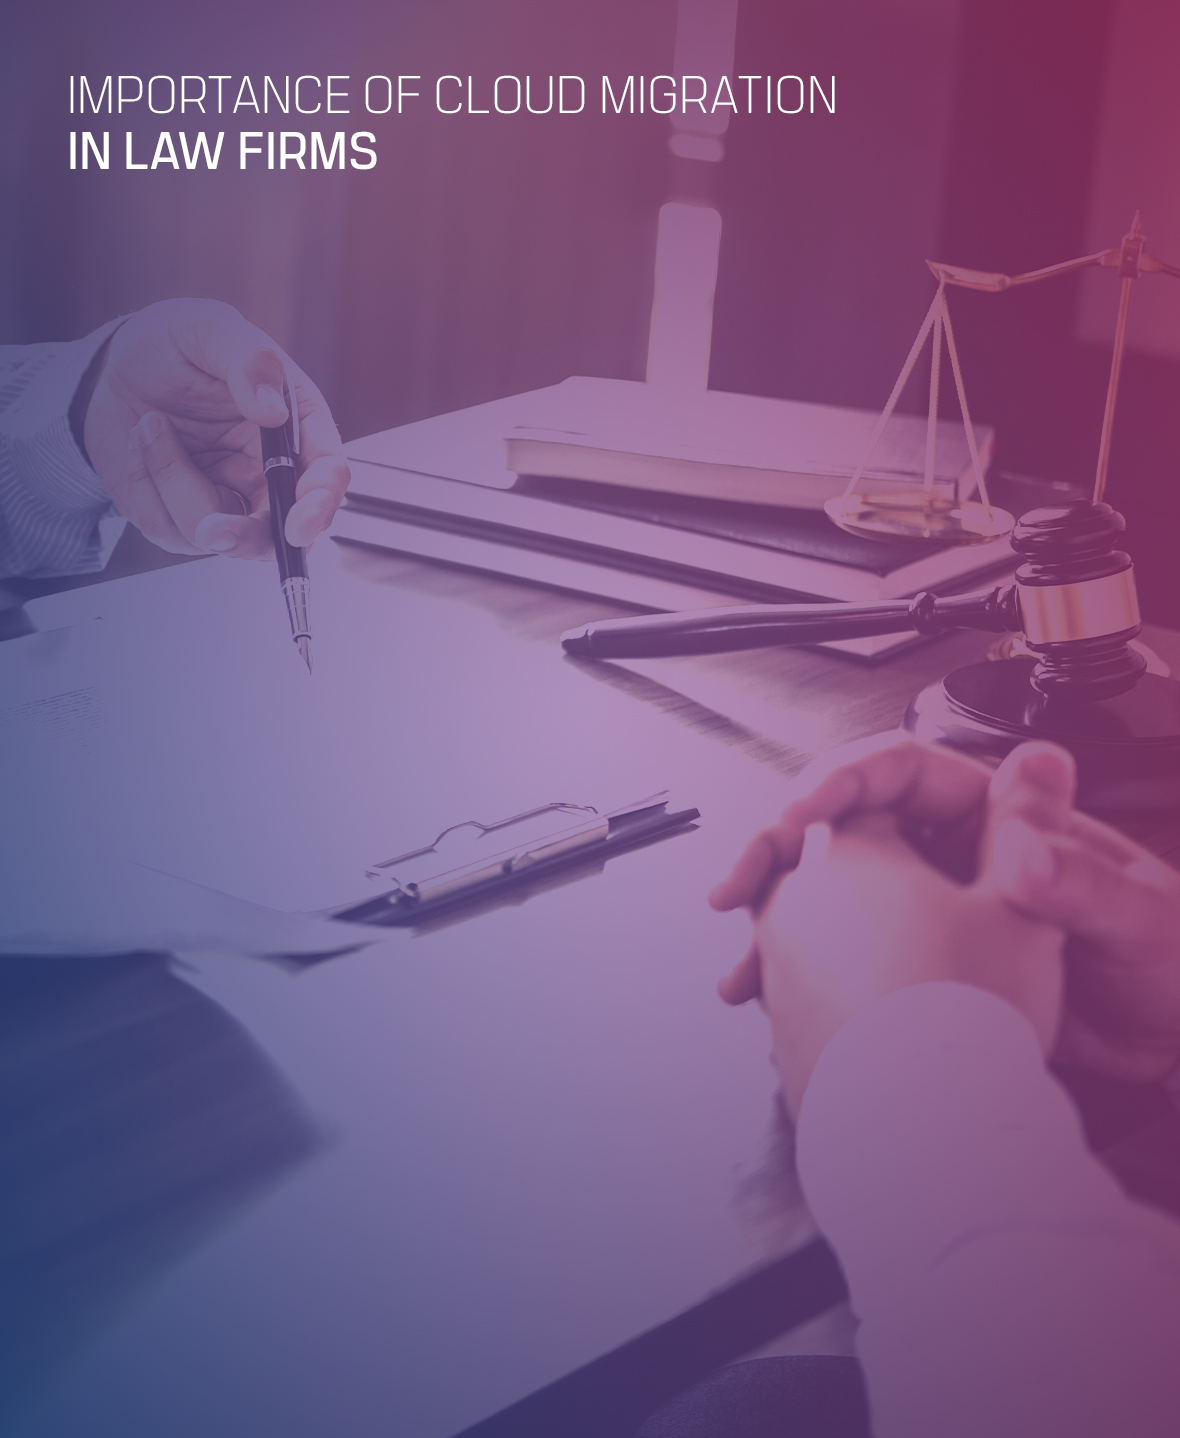 Cloud Migration in Law firm